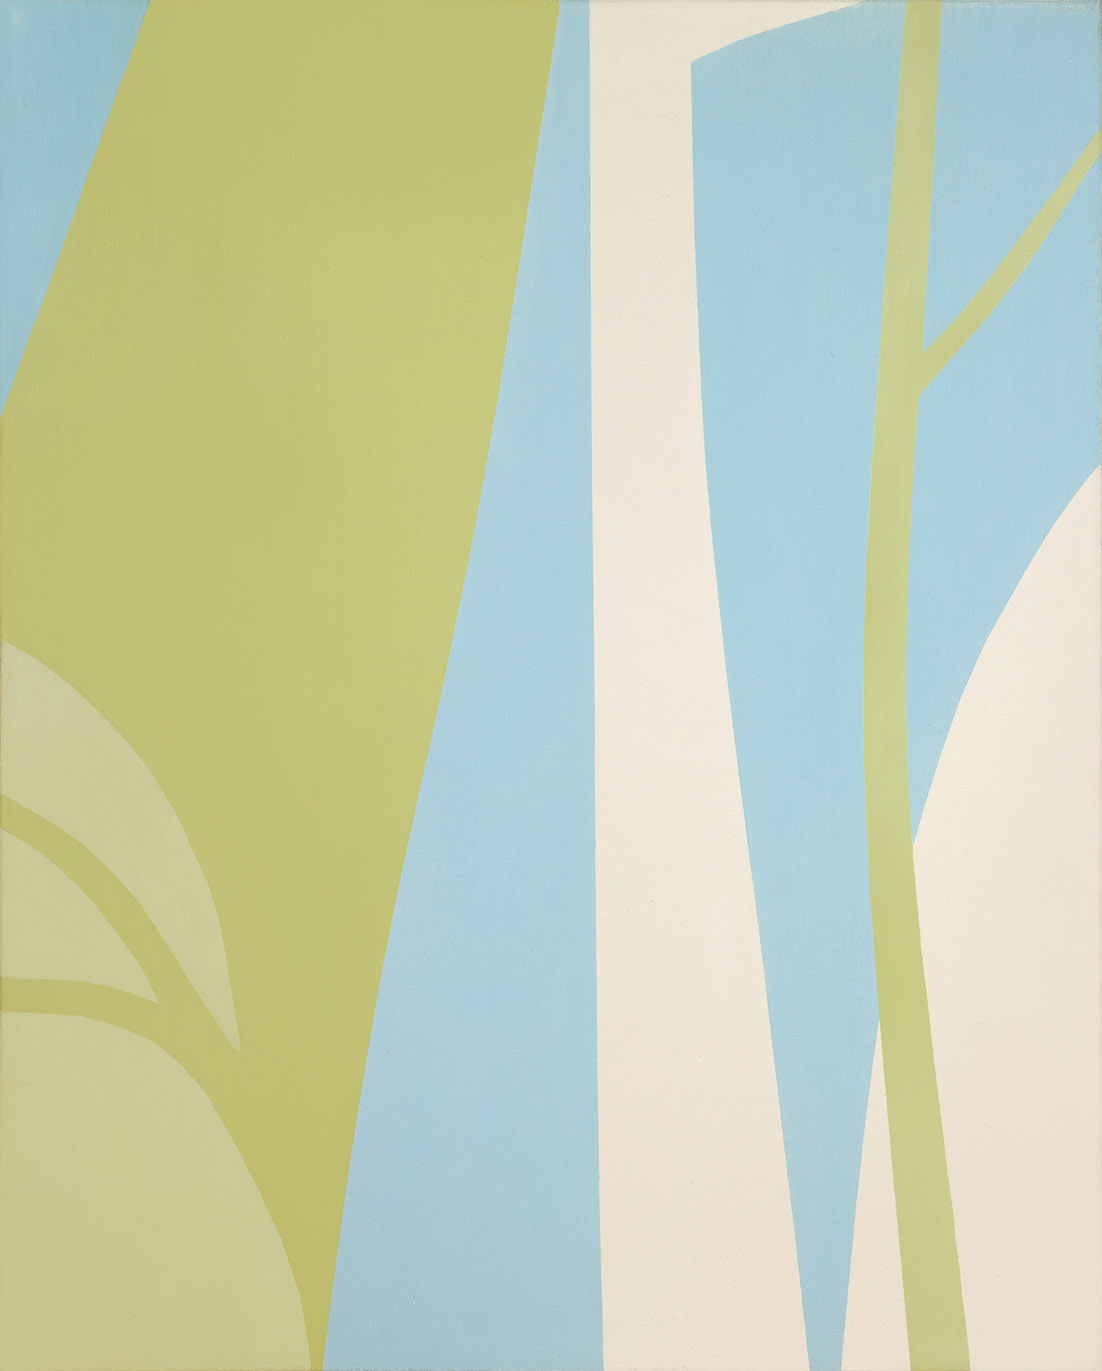 Untitled , 1962  oil on canvas 30 x 24 inches; 76.2 x 61 centimeters